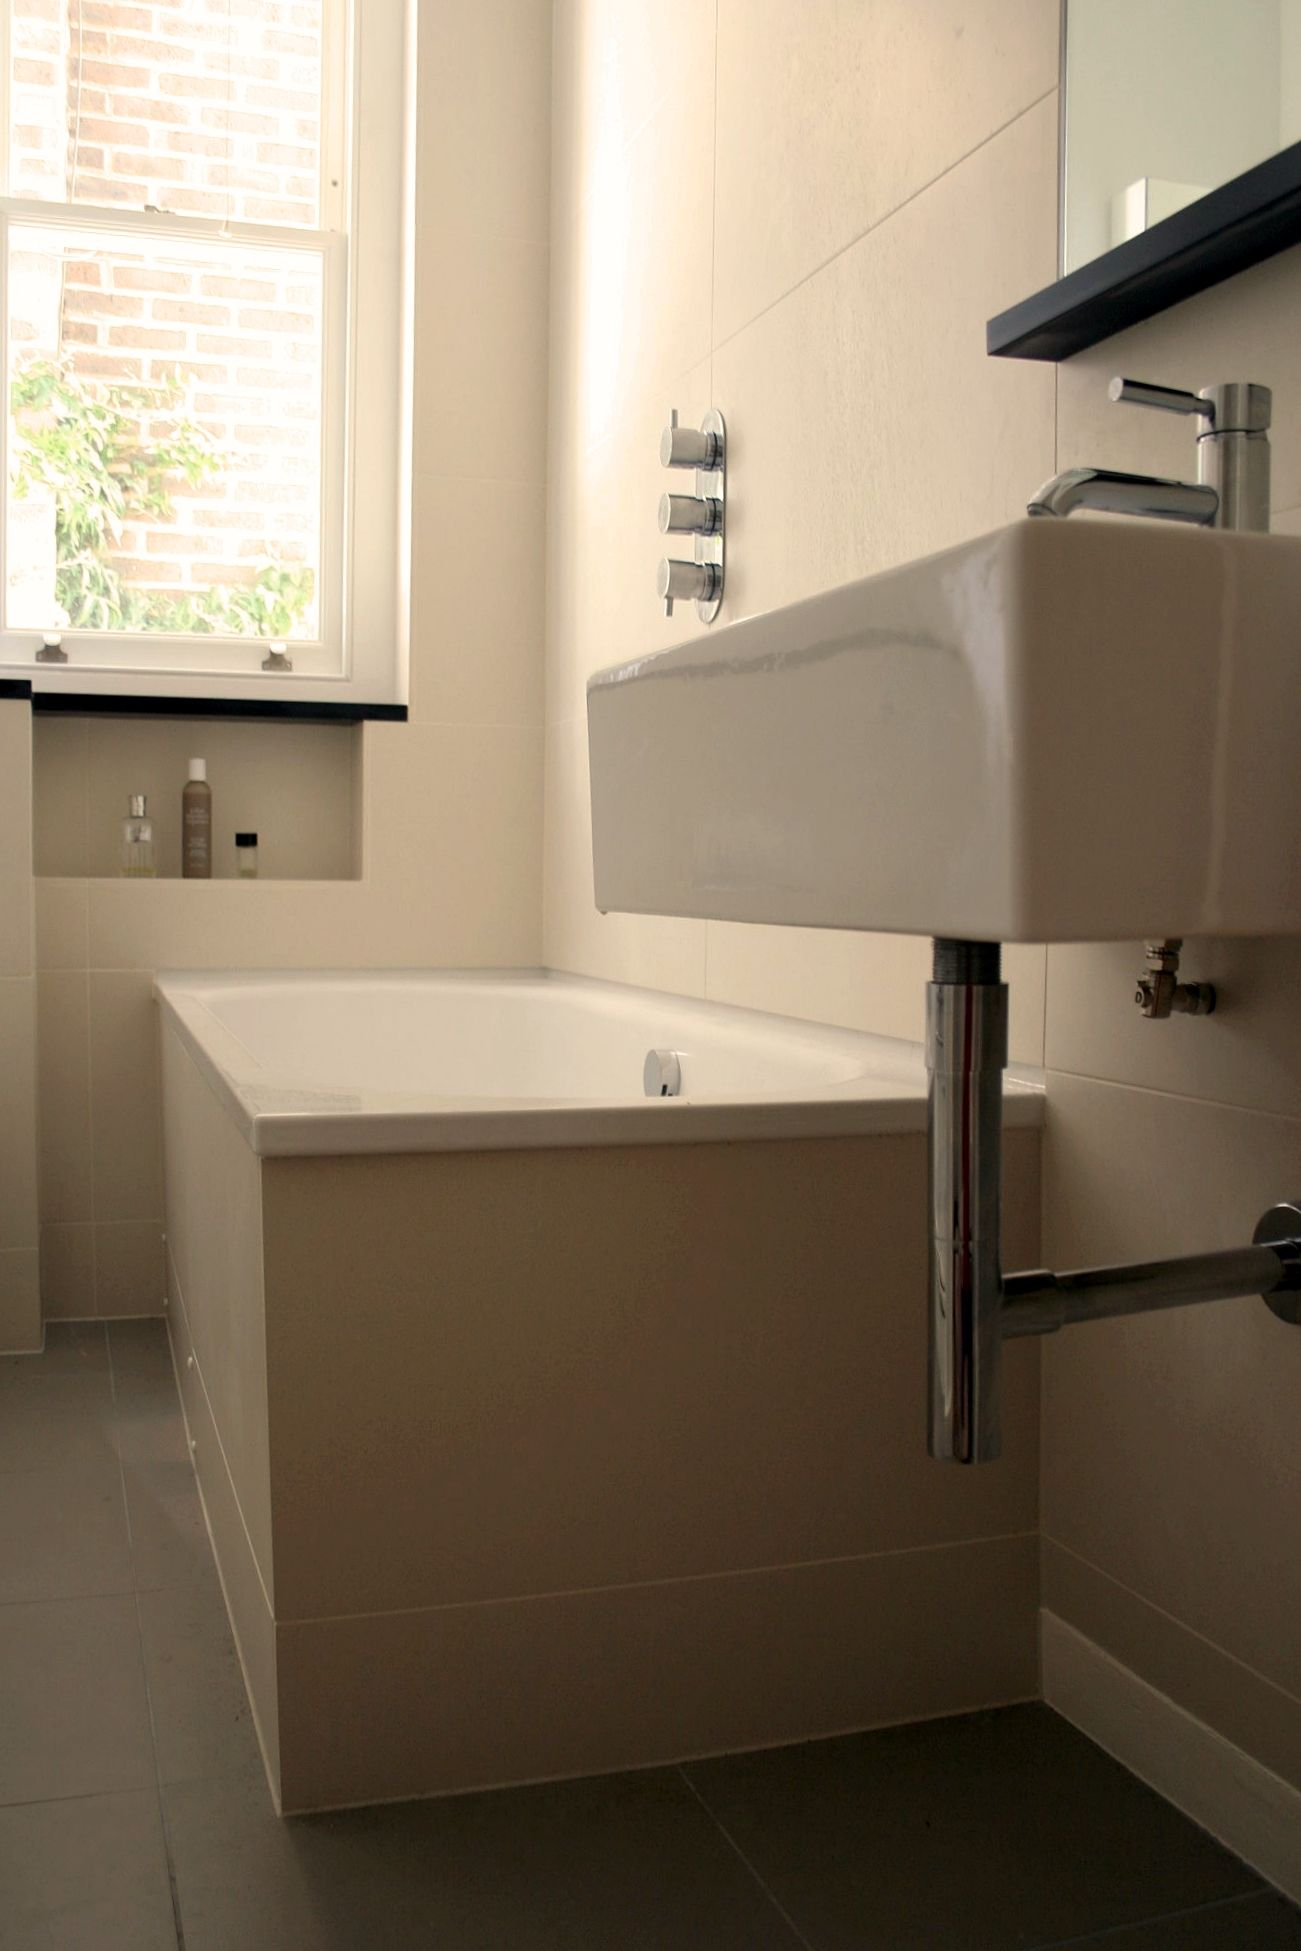 Two-way-thermostatic-divertor-valve-with-a-bath-filler-and-fixedhead ...